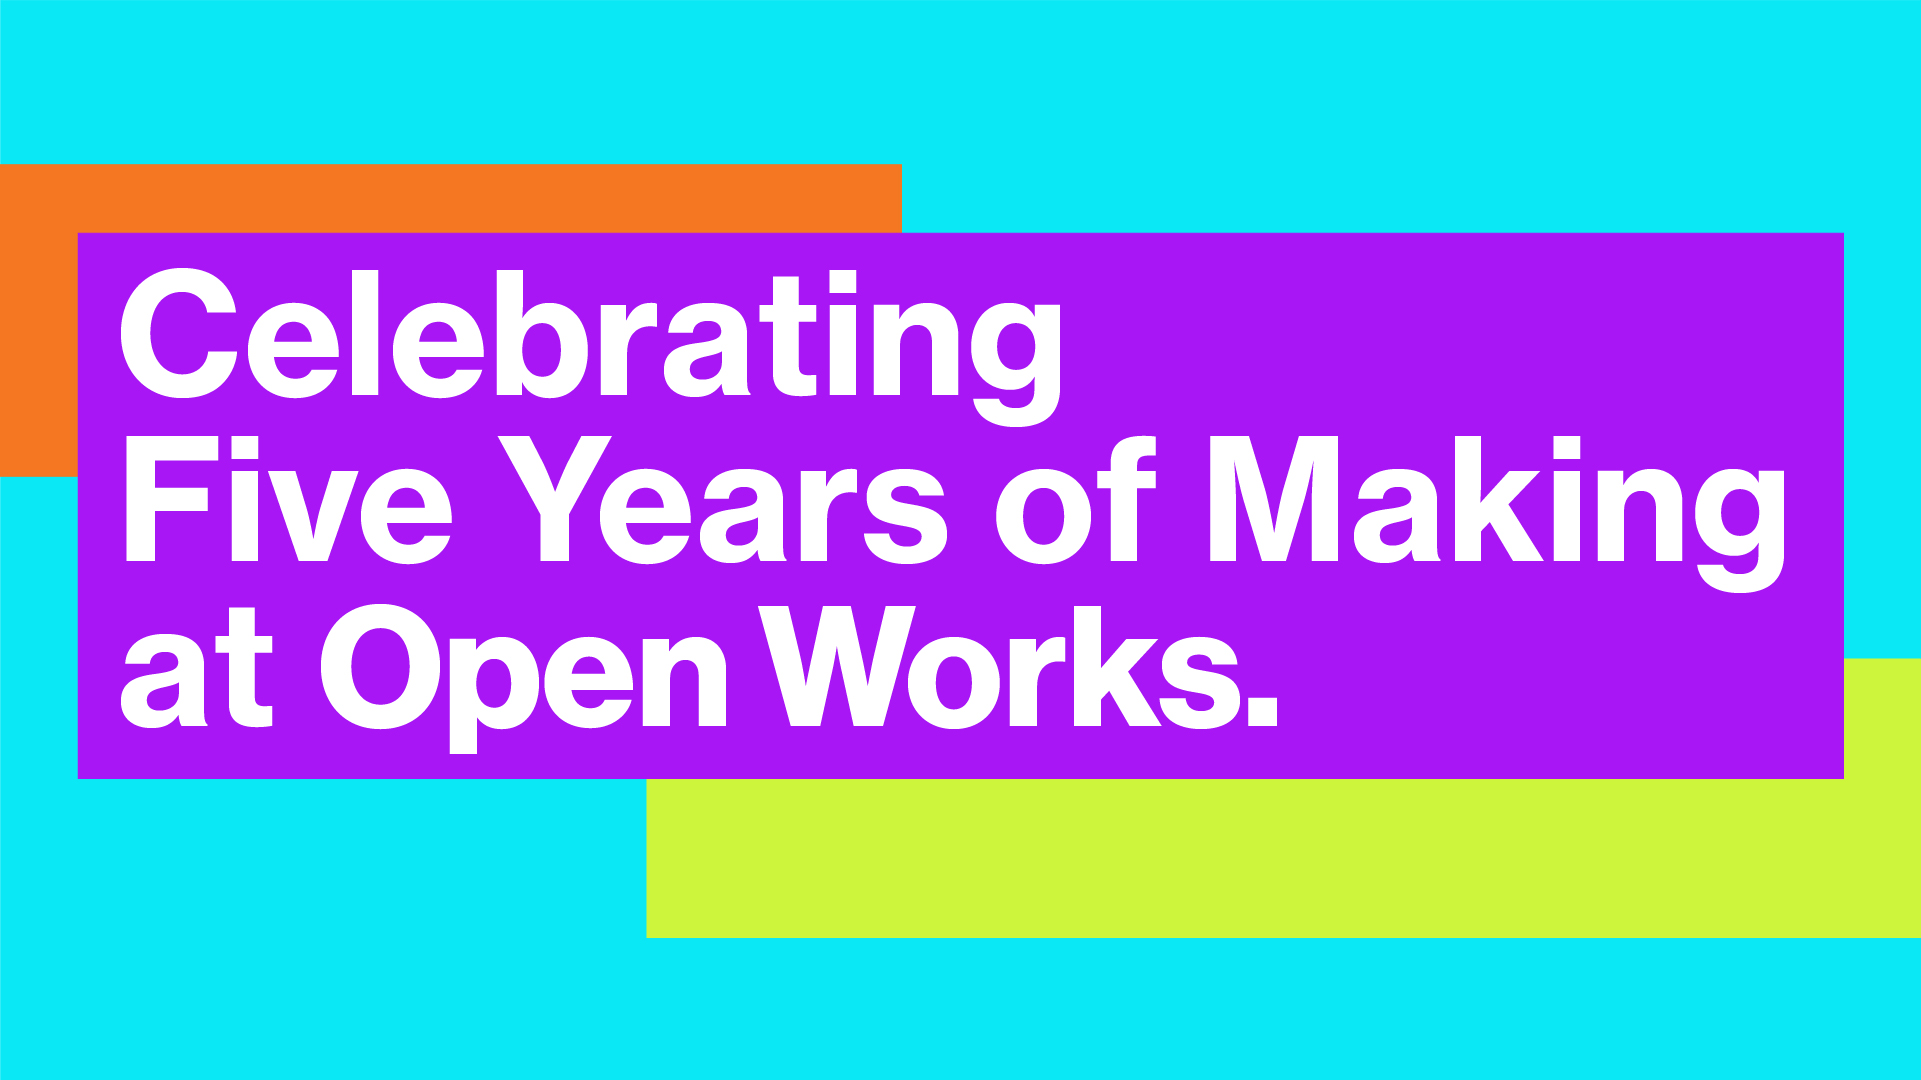 Celebrating 5 years of making at Open Works.